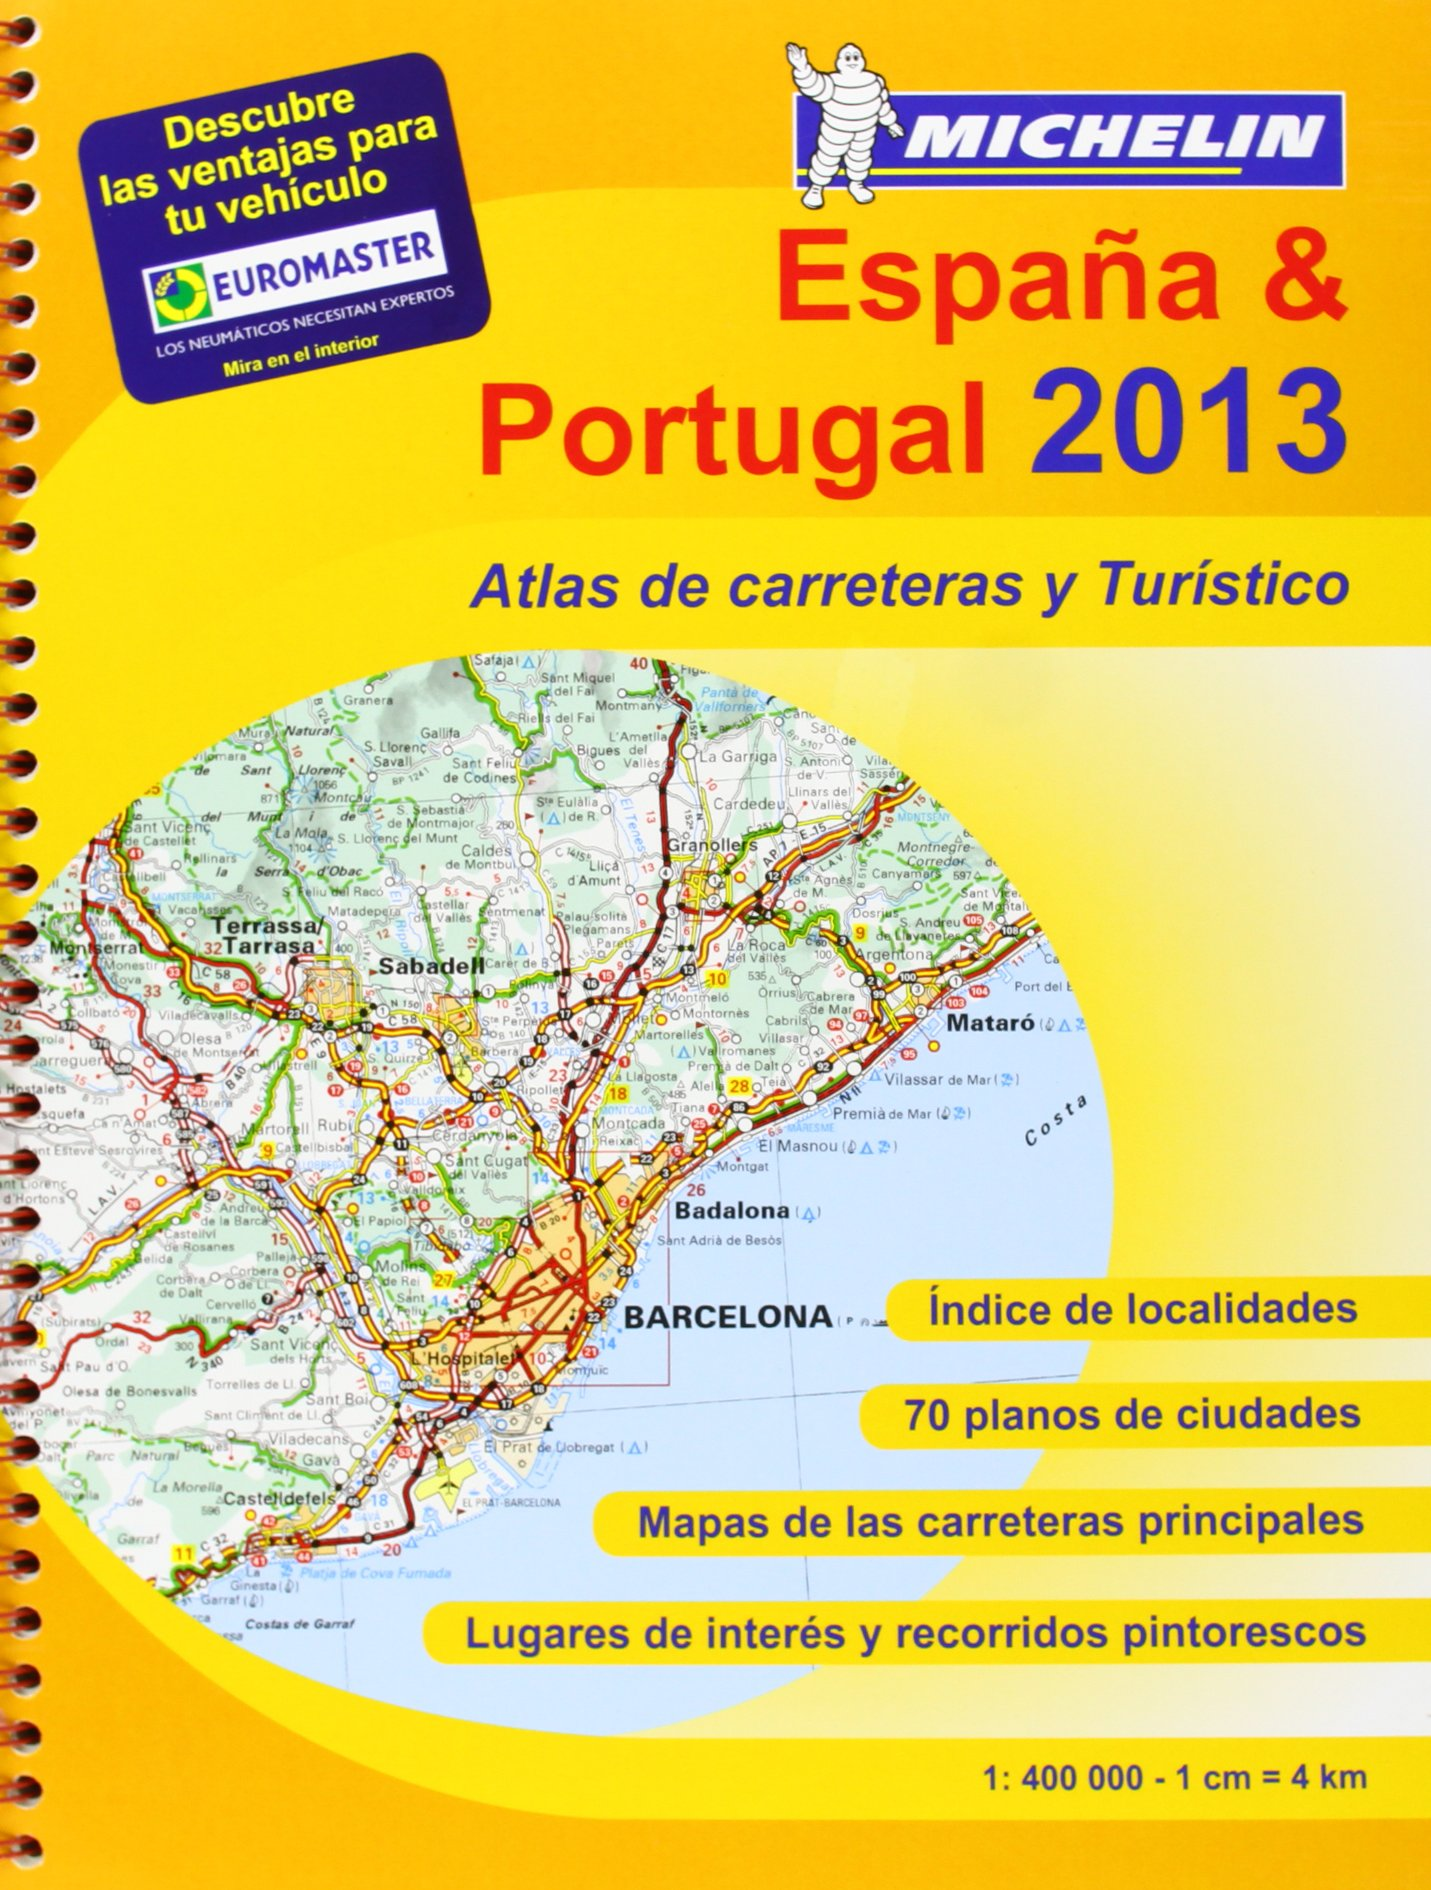 Atlas España - Portugal 2013 A4 4460 Atlas de carreteras Michelin: Amazon.es: Aa.Vv.: Libros